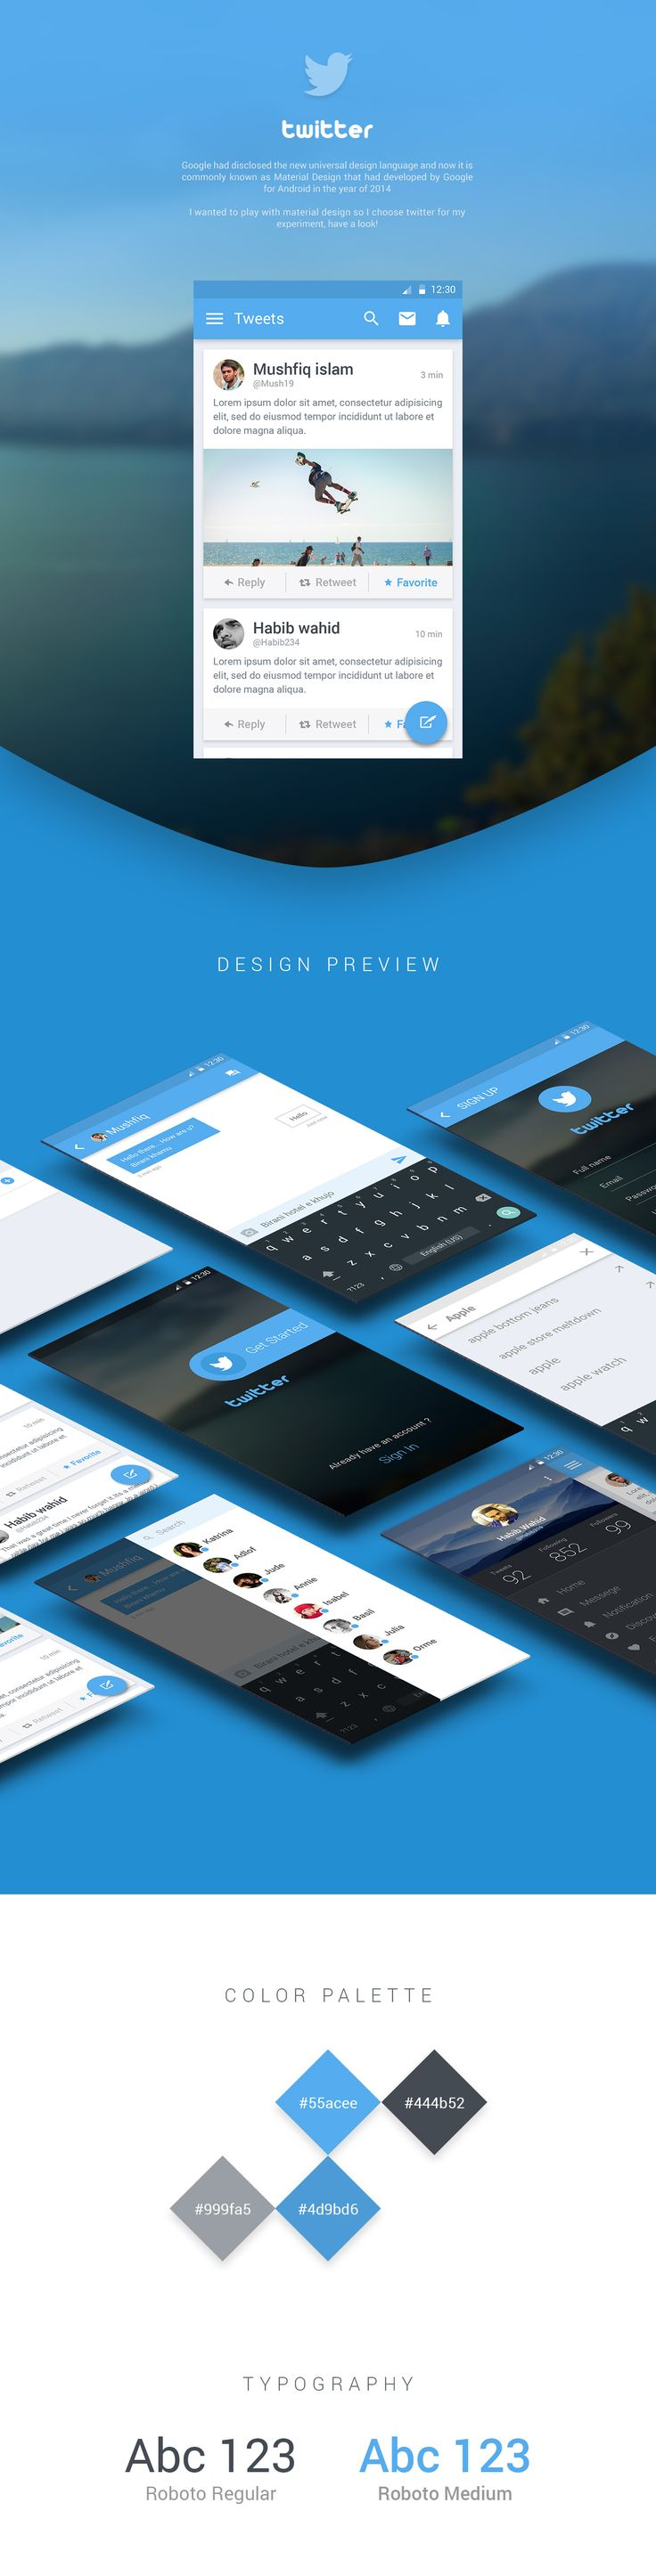 Poster design app android - Showcase And Discover Creative Work On The World S Leading Online Platform For Creative Industries Mobile App Designmobile Uiandroid